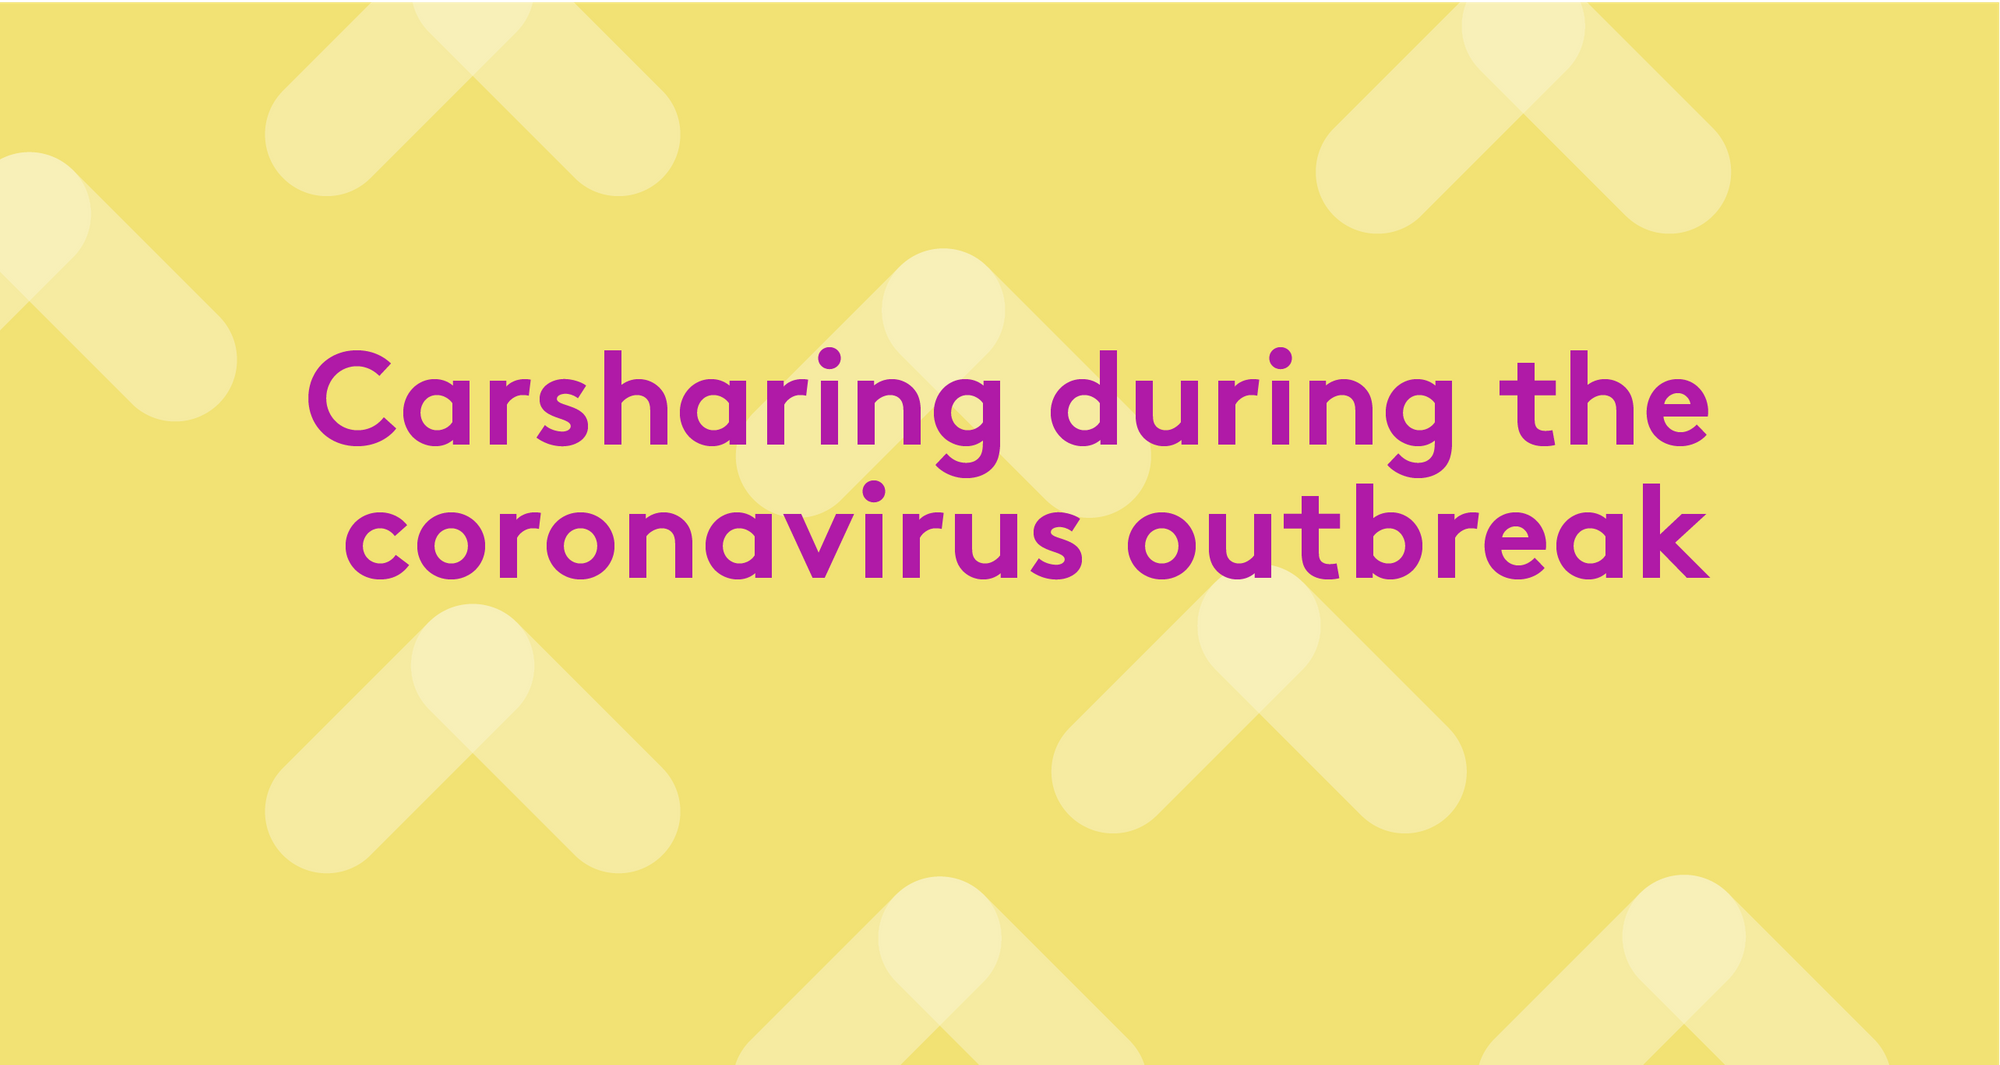 Carsharing during the coronavirus outbreak